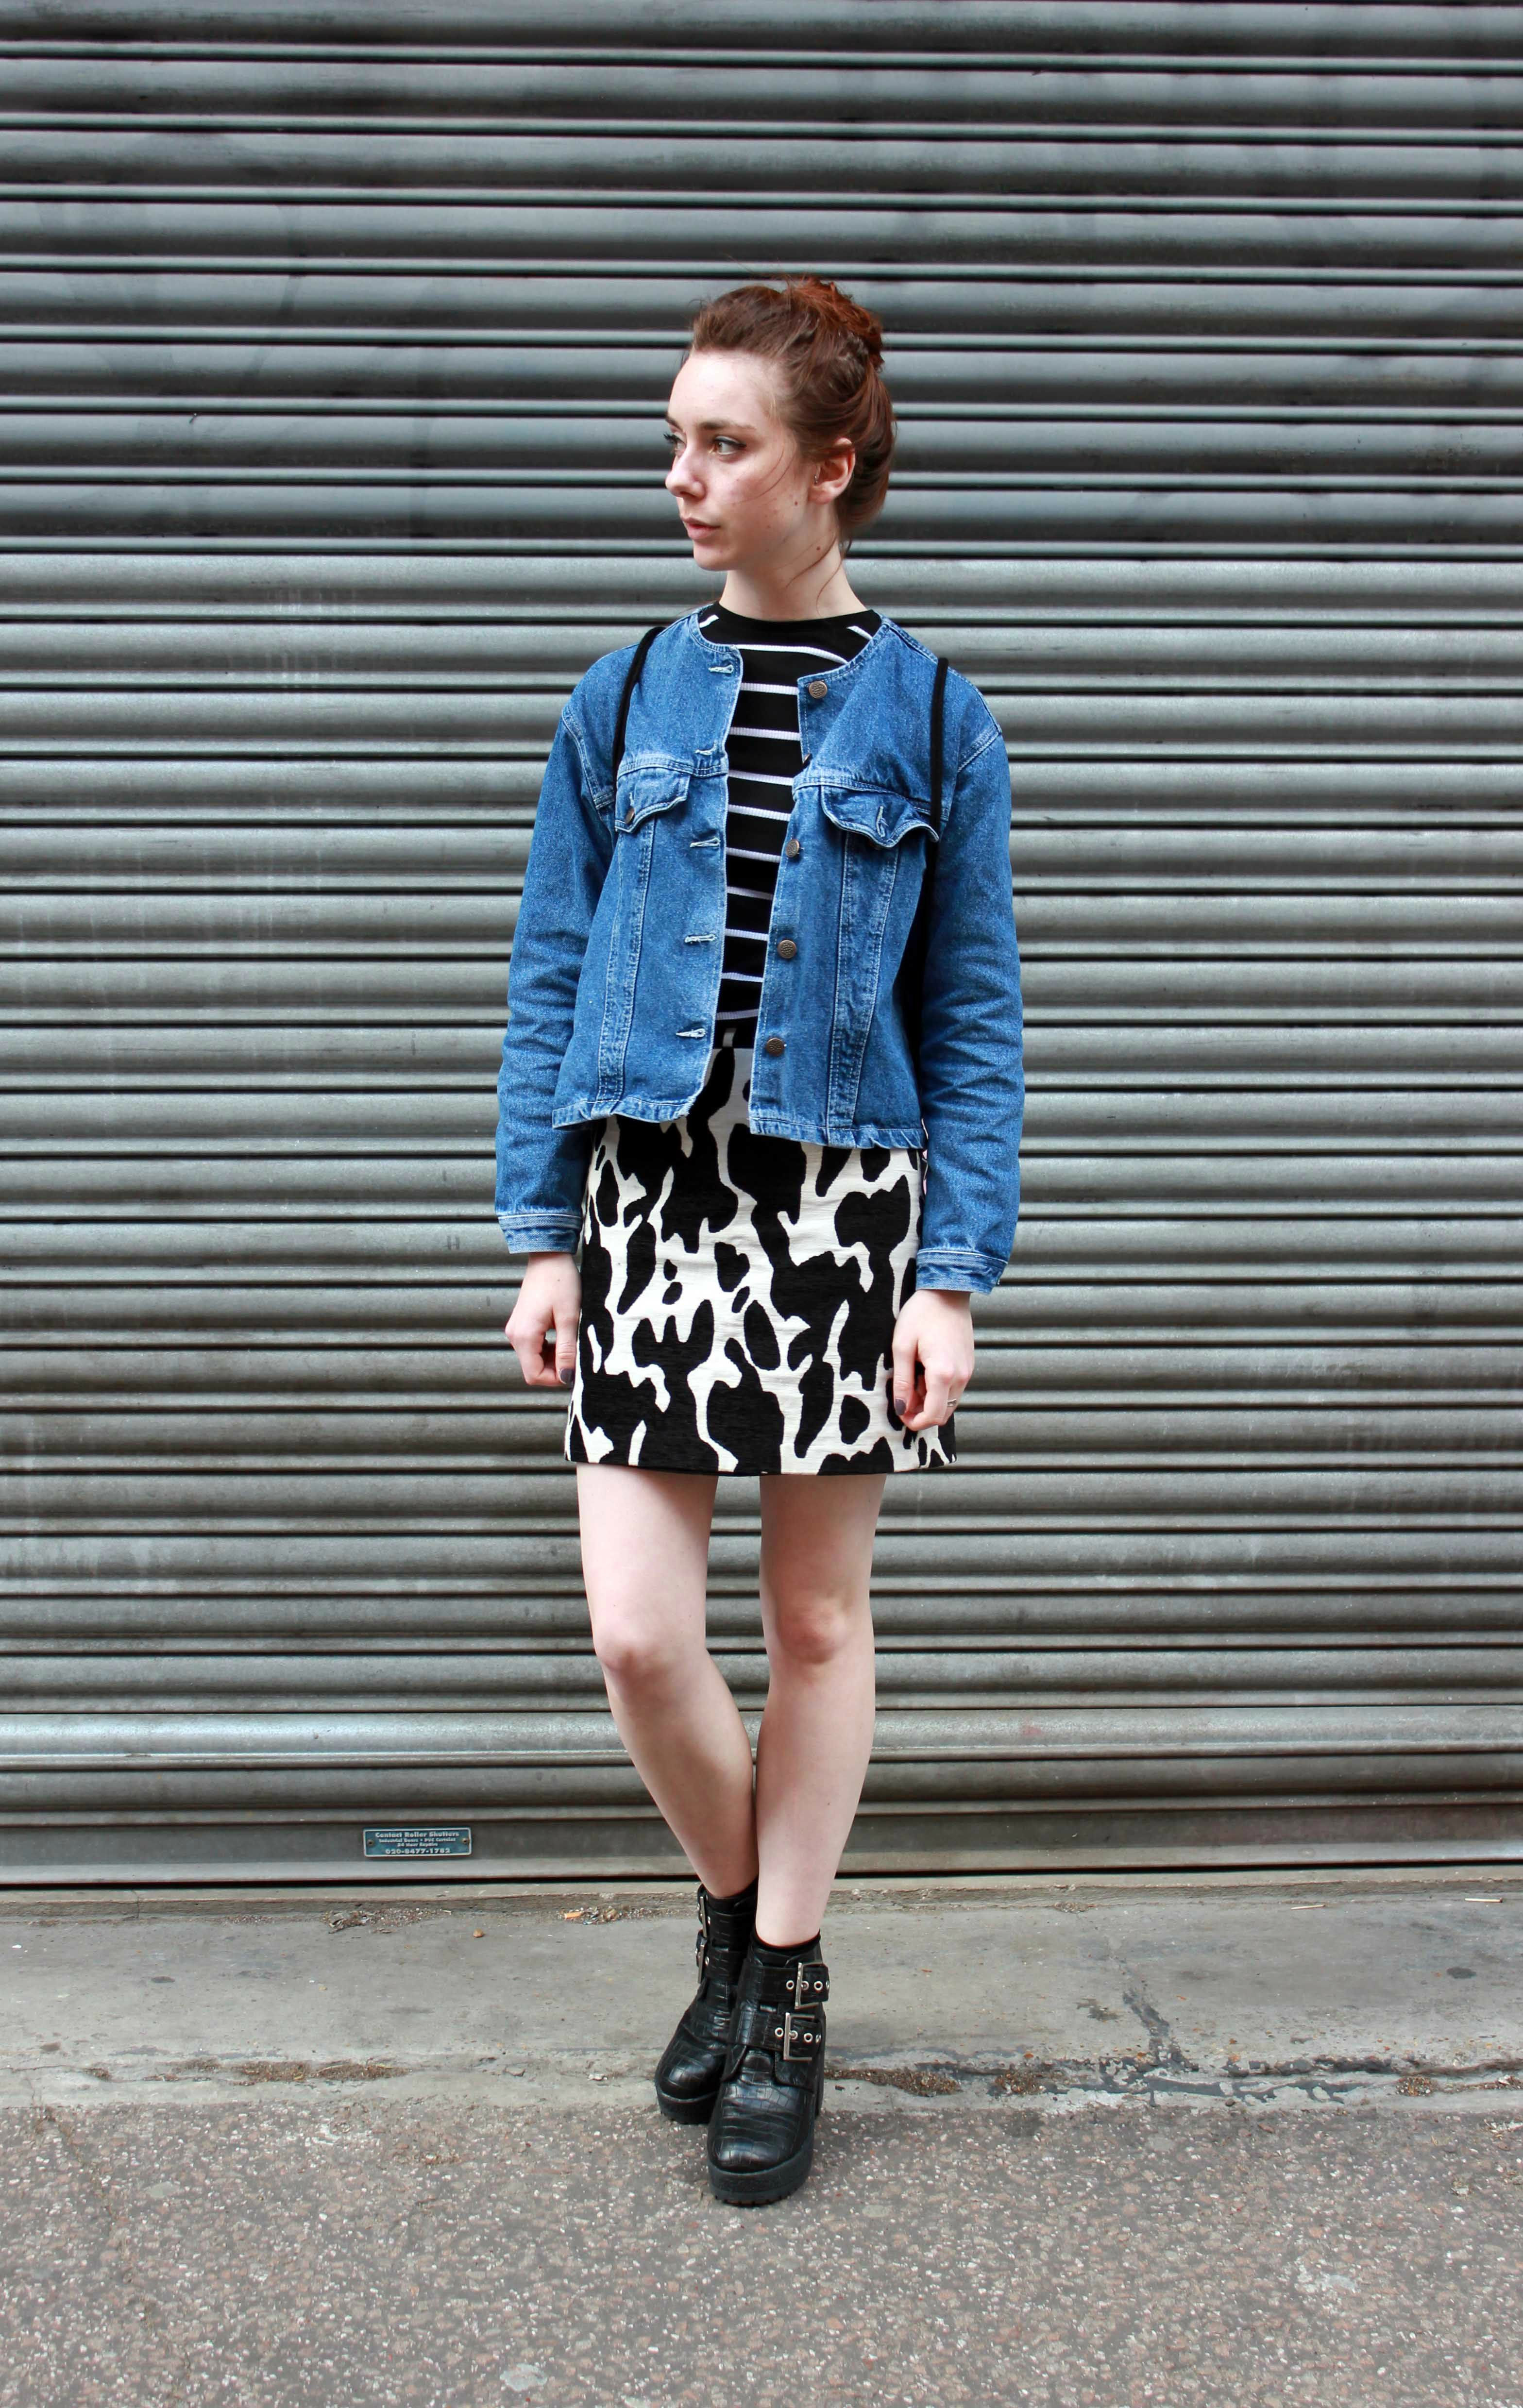 Vintage denim jacket, a cow print skirt and black boots worn by fashion and style blogger Chelsea Jade